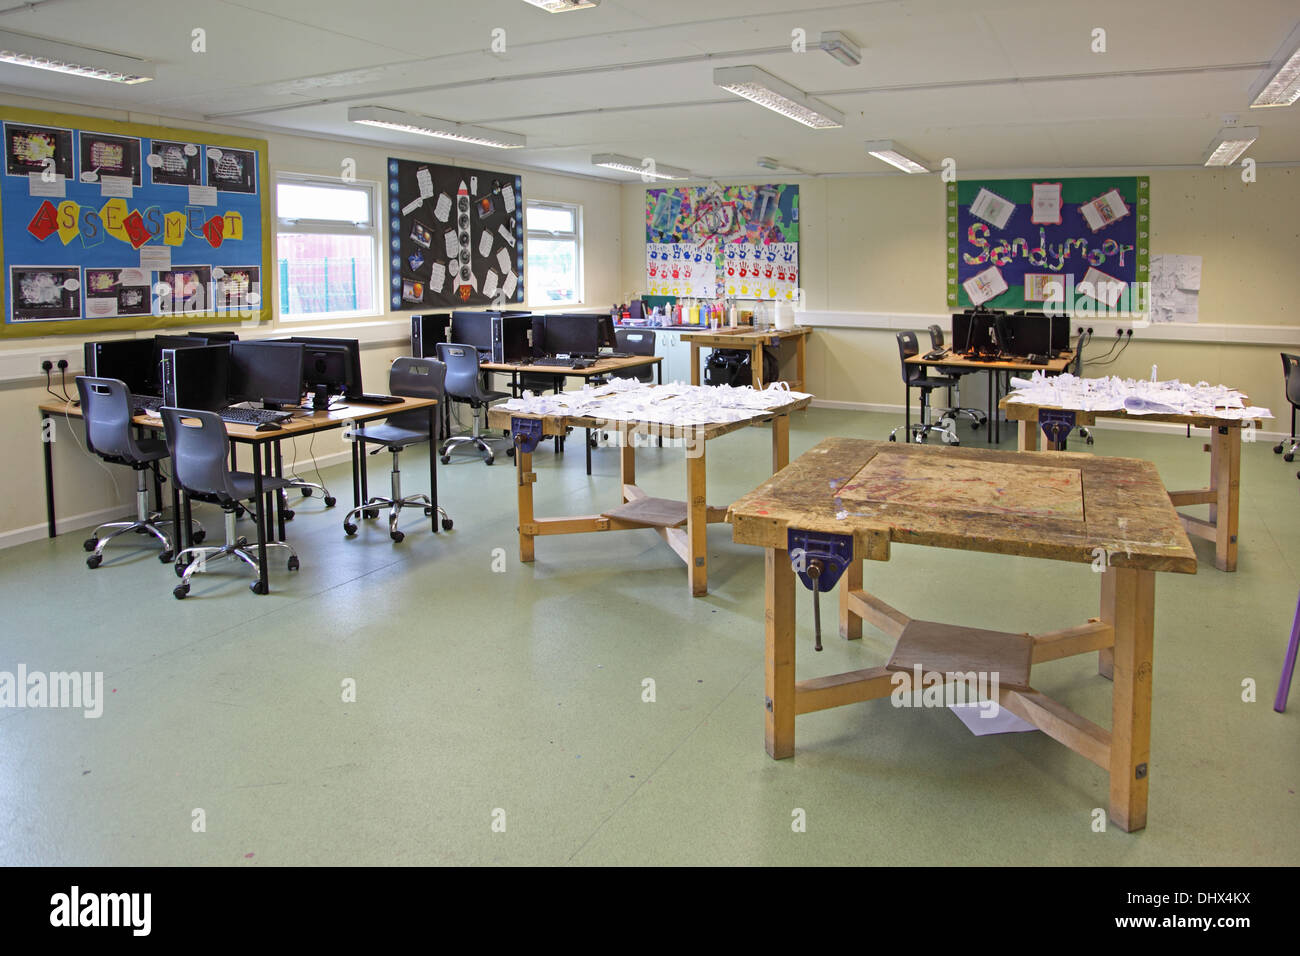 The Art Craft And Technology Teaching Room In A New Free School